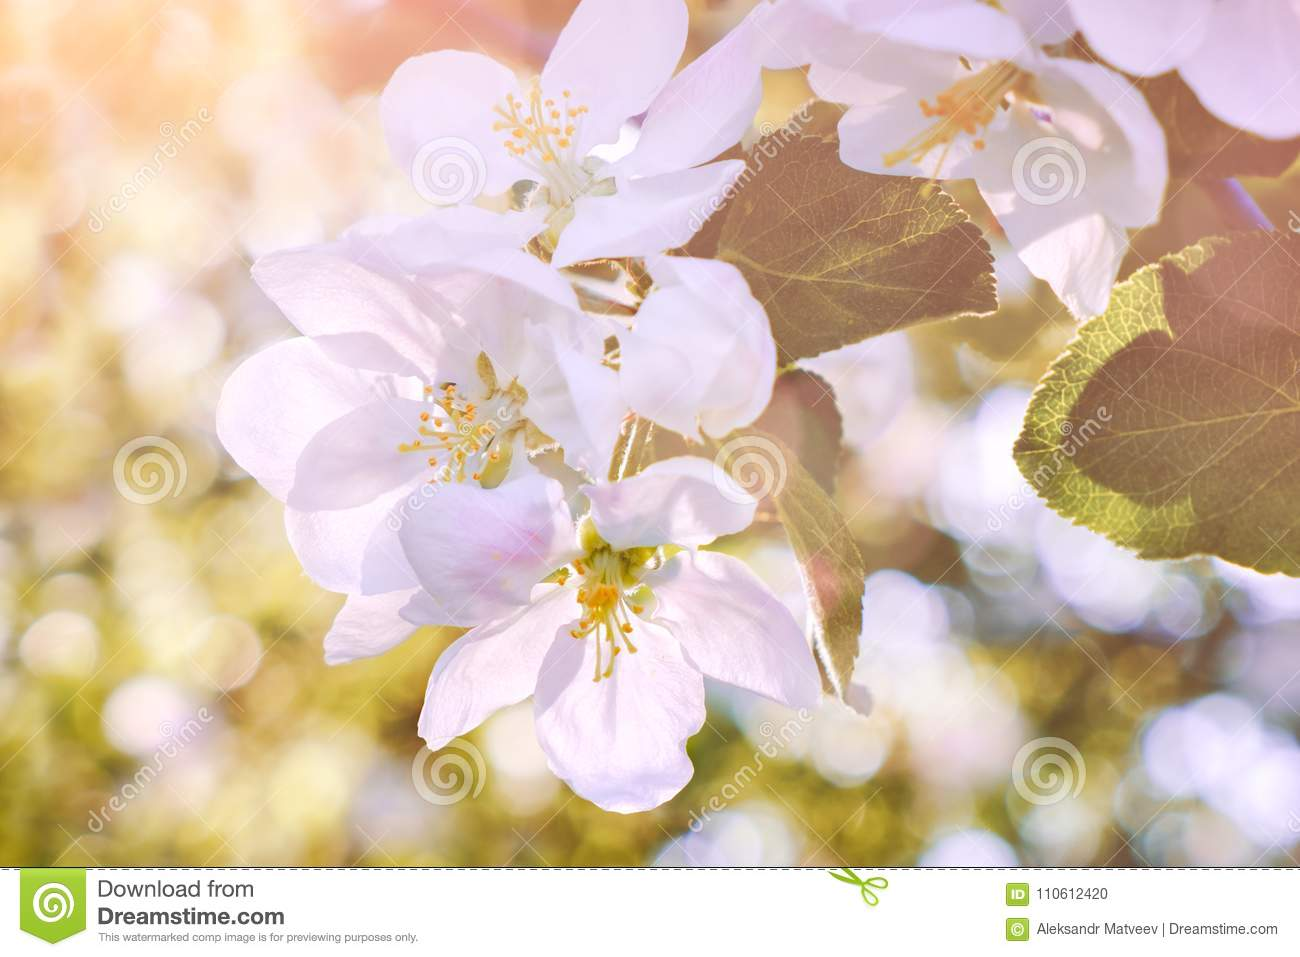 Blossom tree over nature background/ Spring flowers/Spring Background